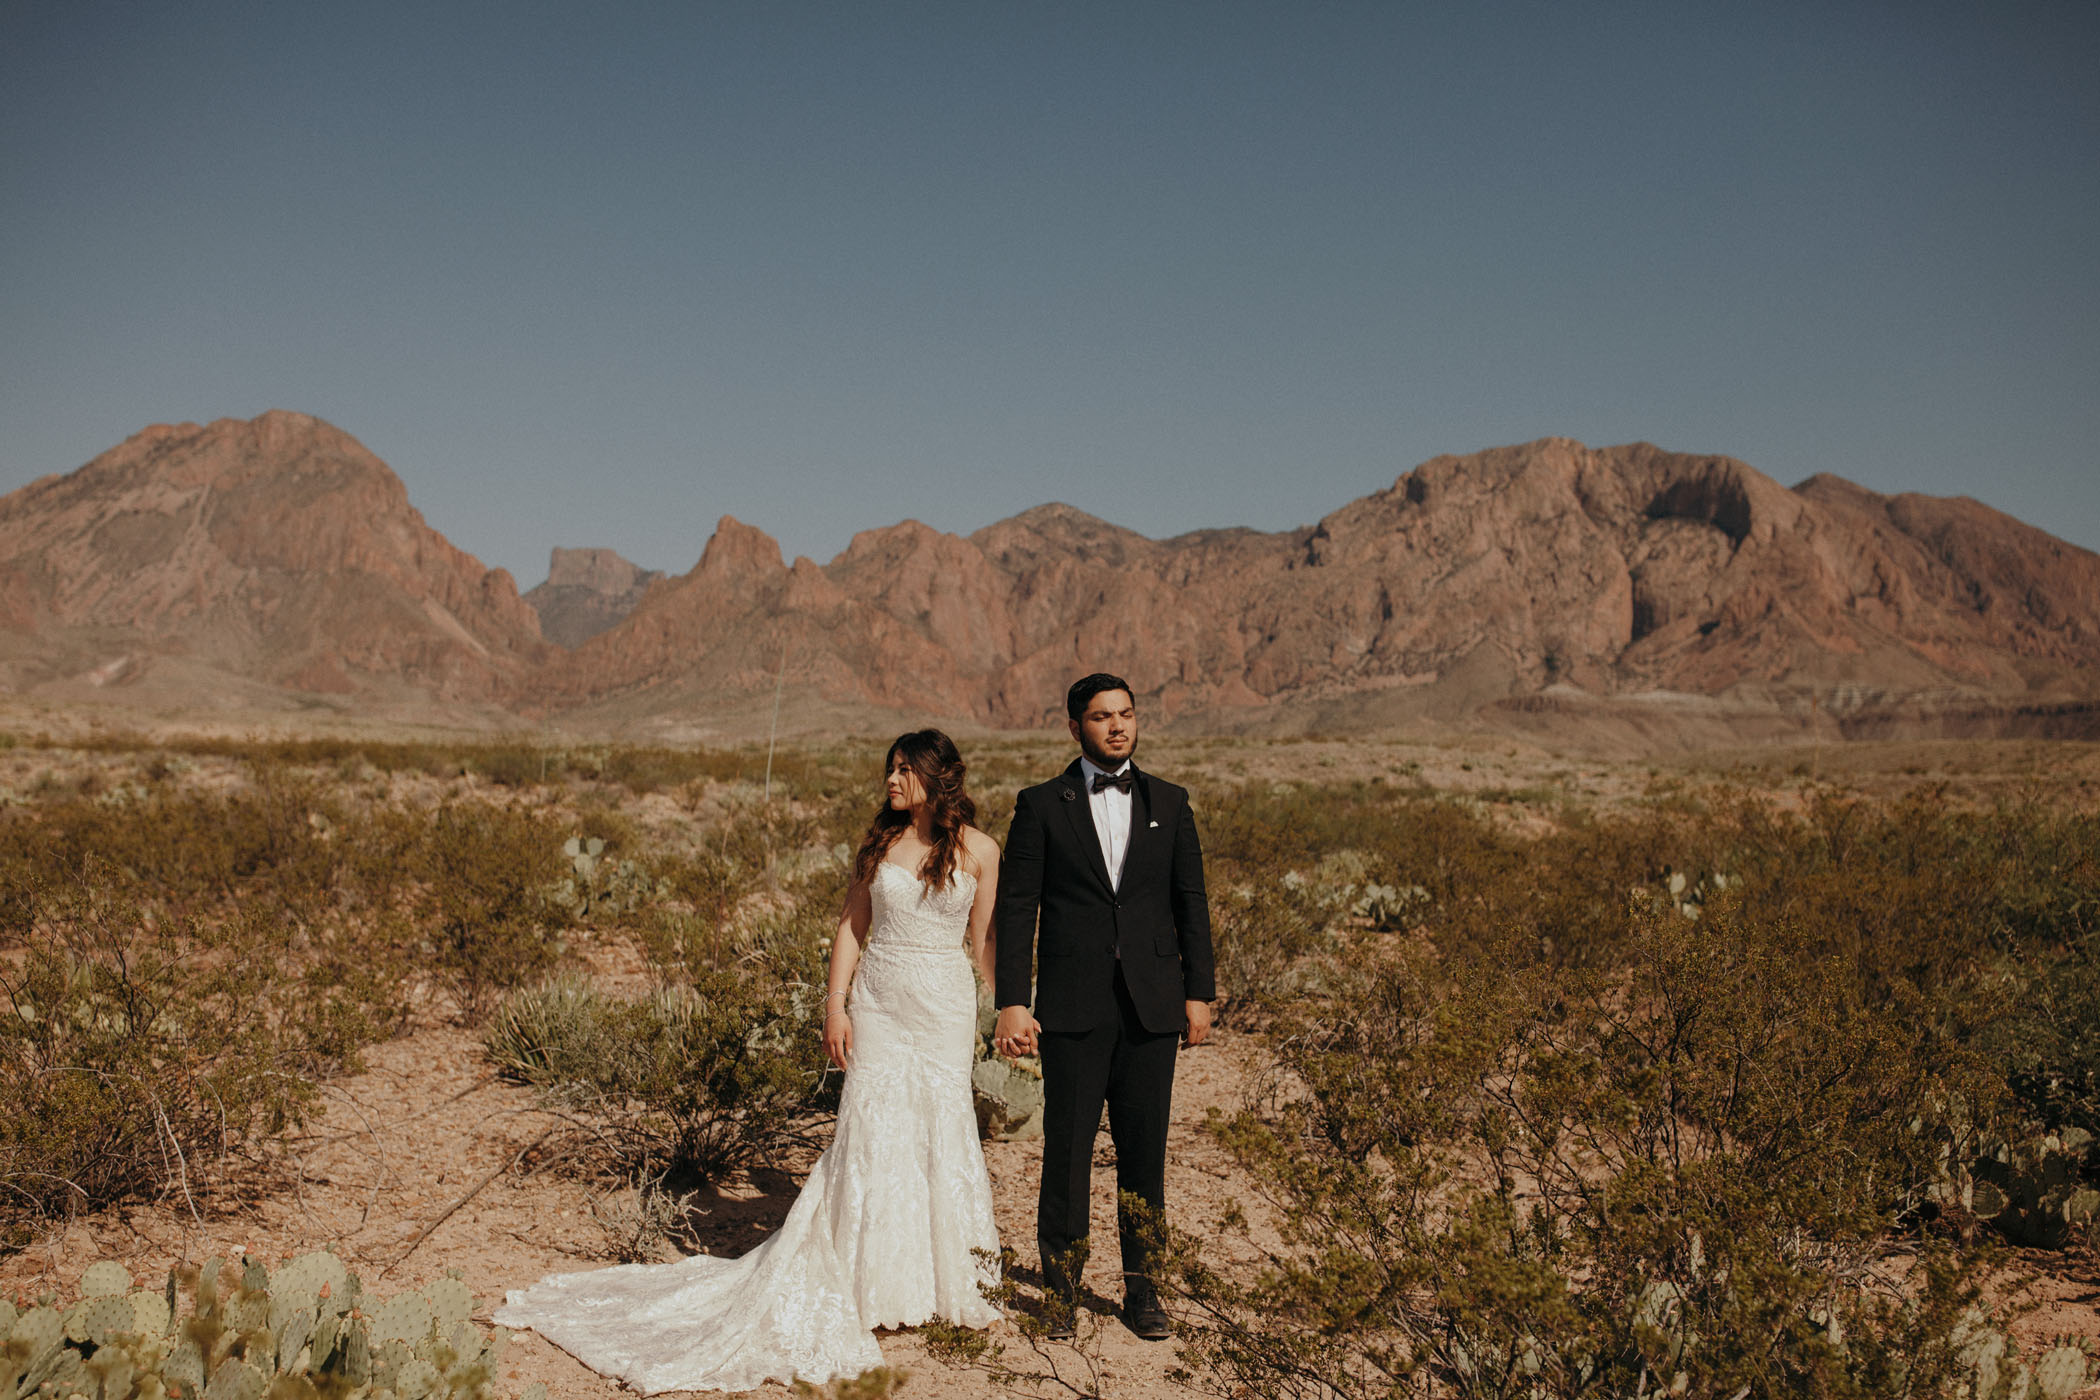 Bride and groom holding hands in front of the desert landscape